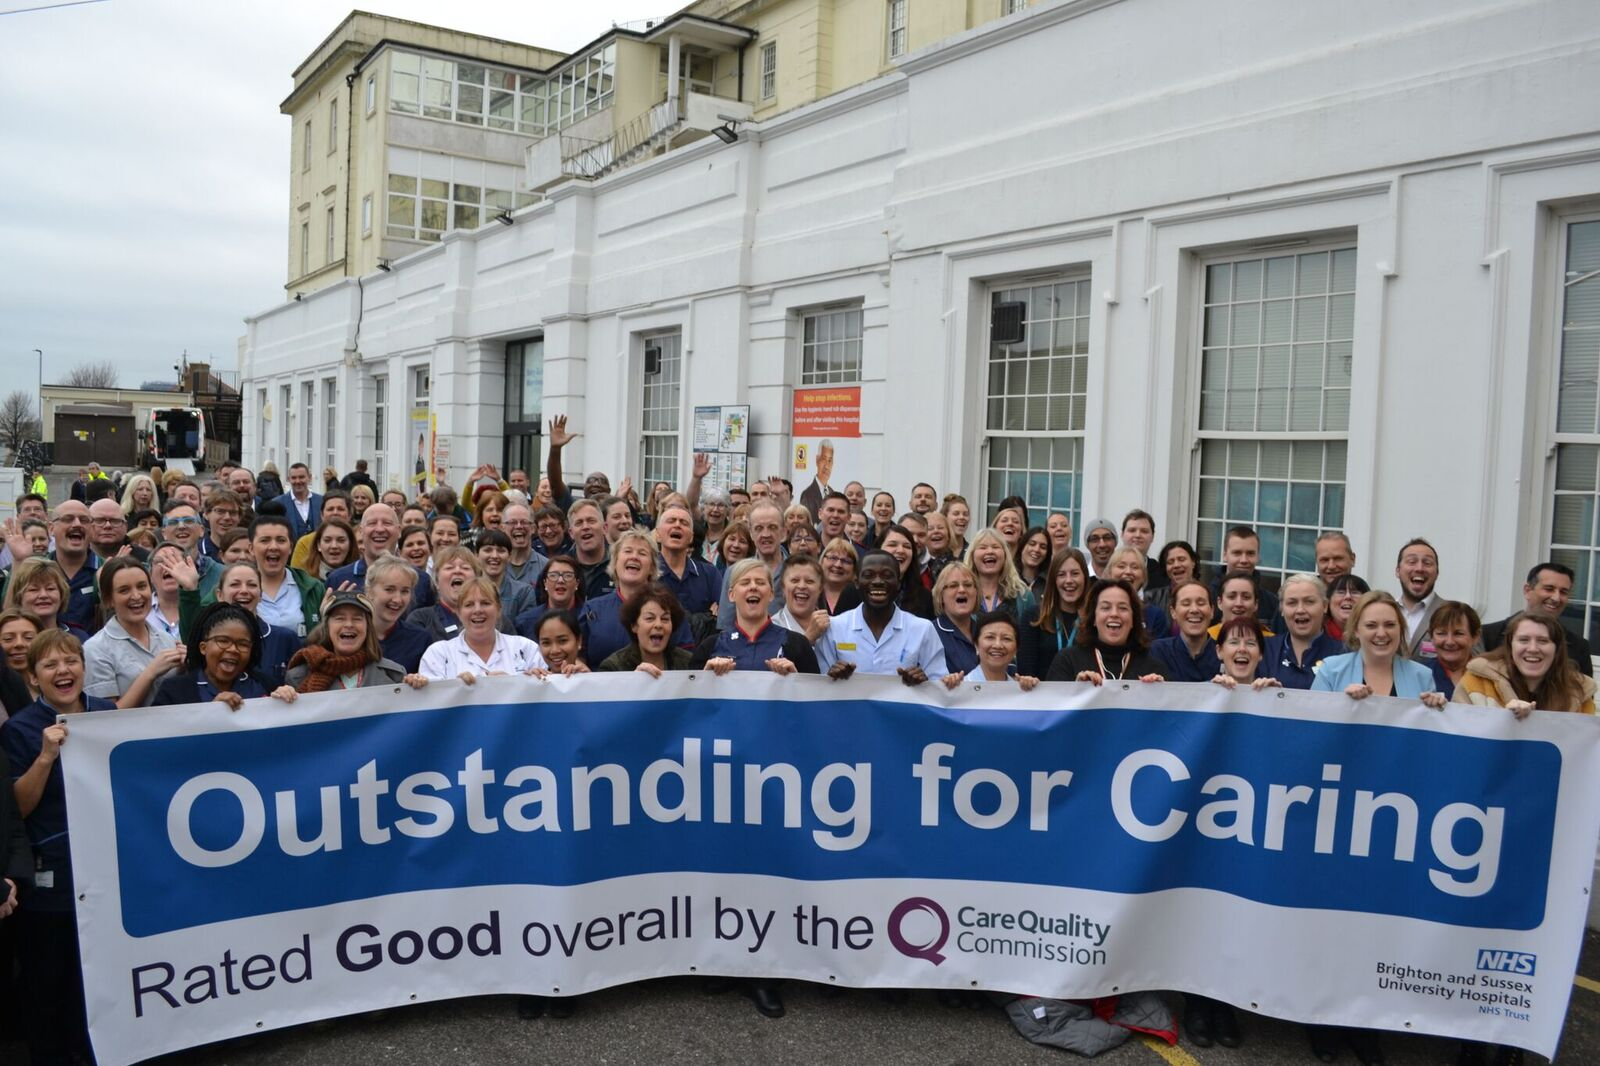 Brighton and Hove News » Brighton hospital trust taken out